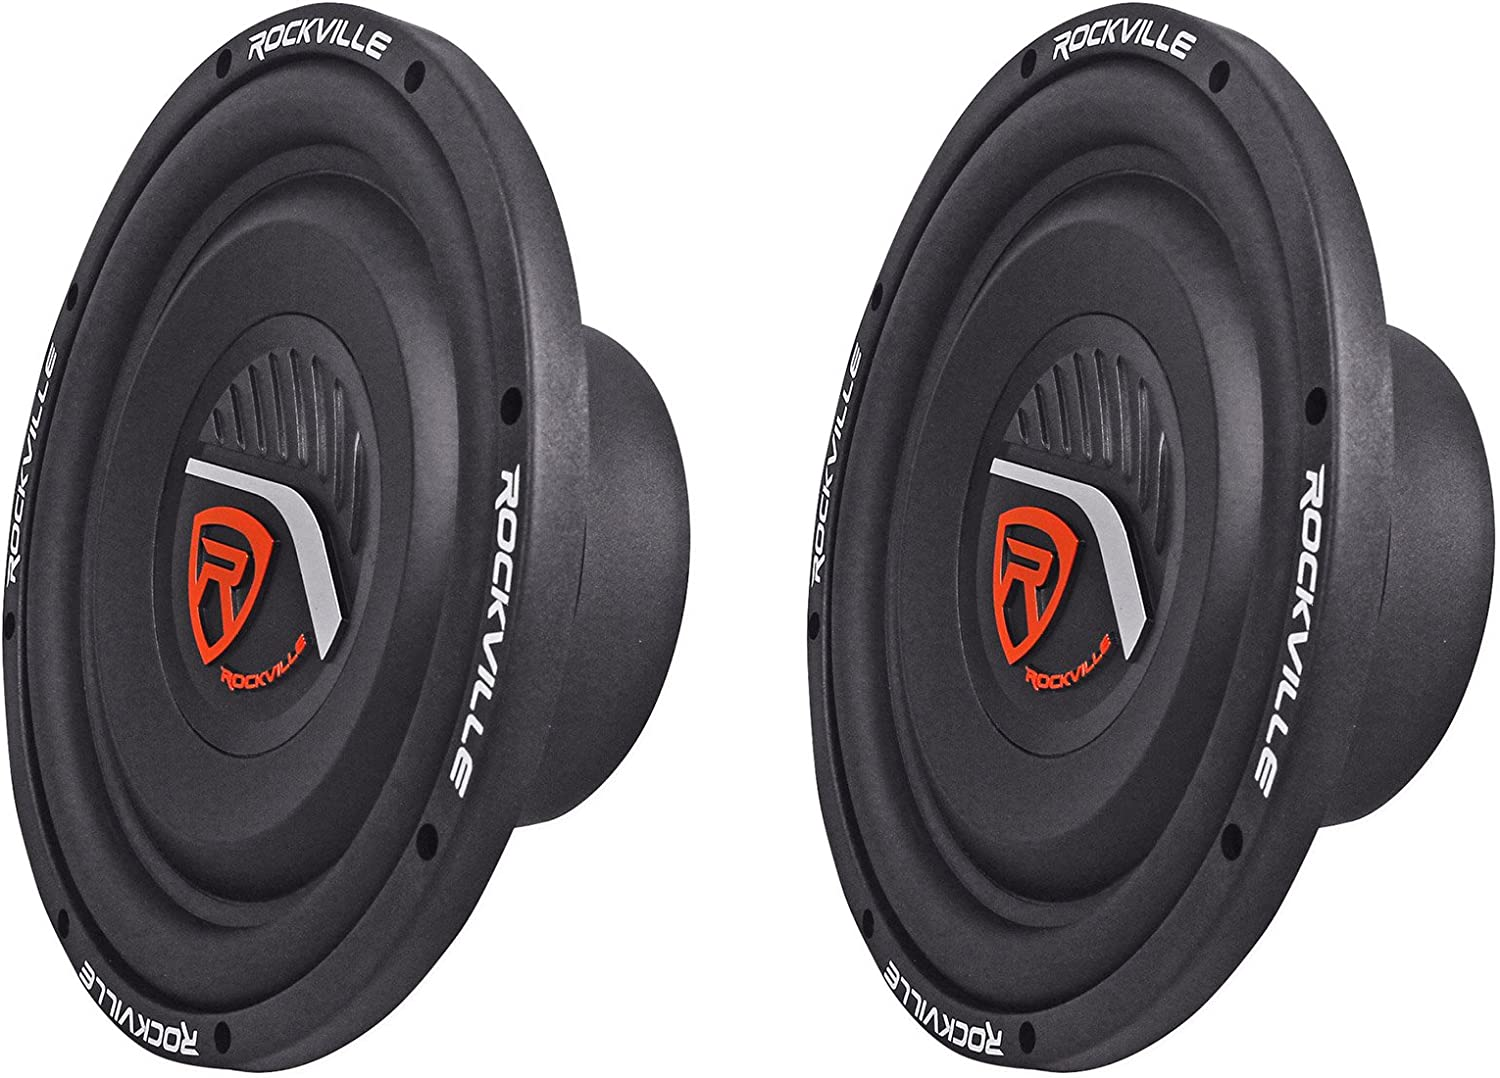 "(2) Rockville W10T4-S2 10"" Shallow Mount 2400 Watts 2-Ohm Car Audio Subwoofers 81p0eIPwytLSL1500_"